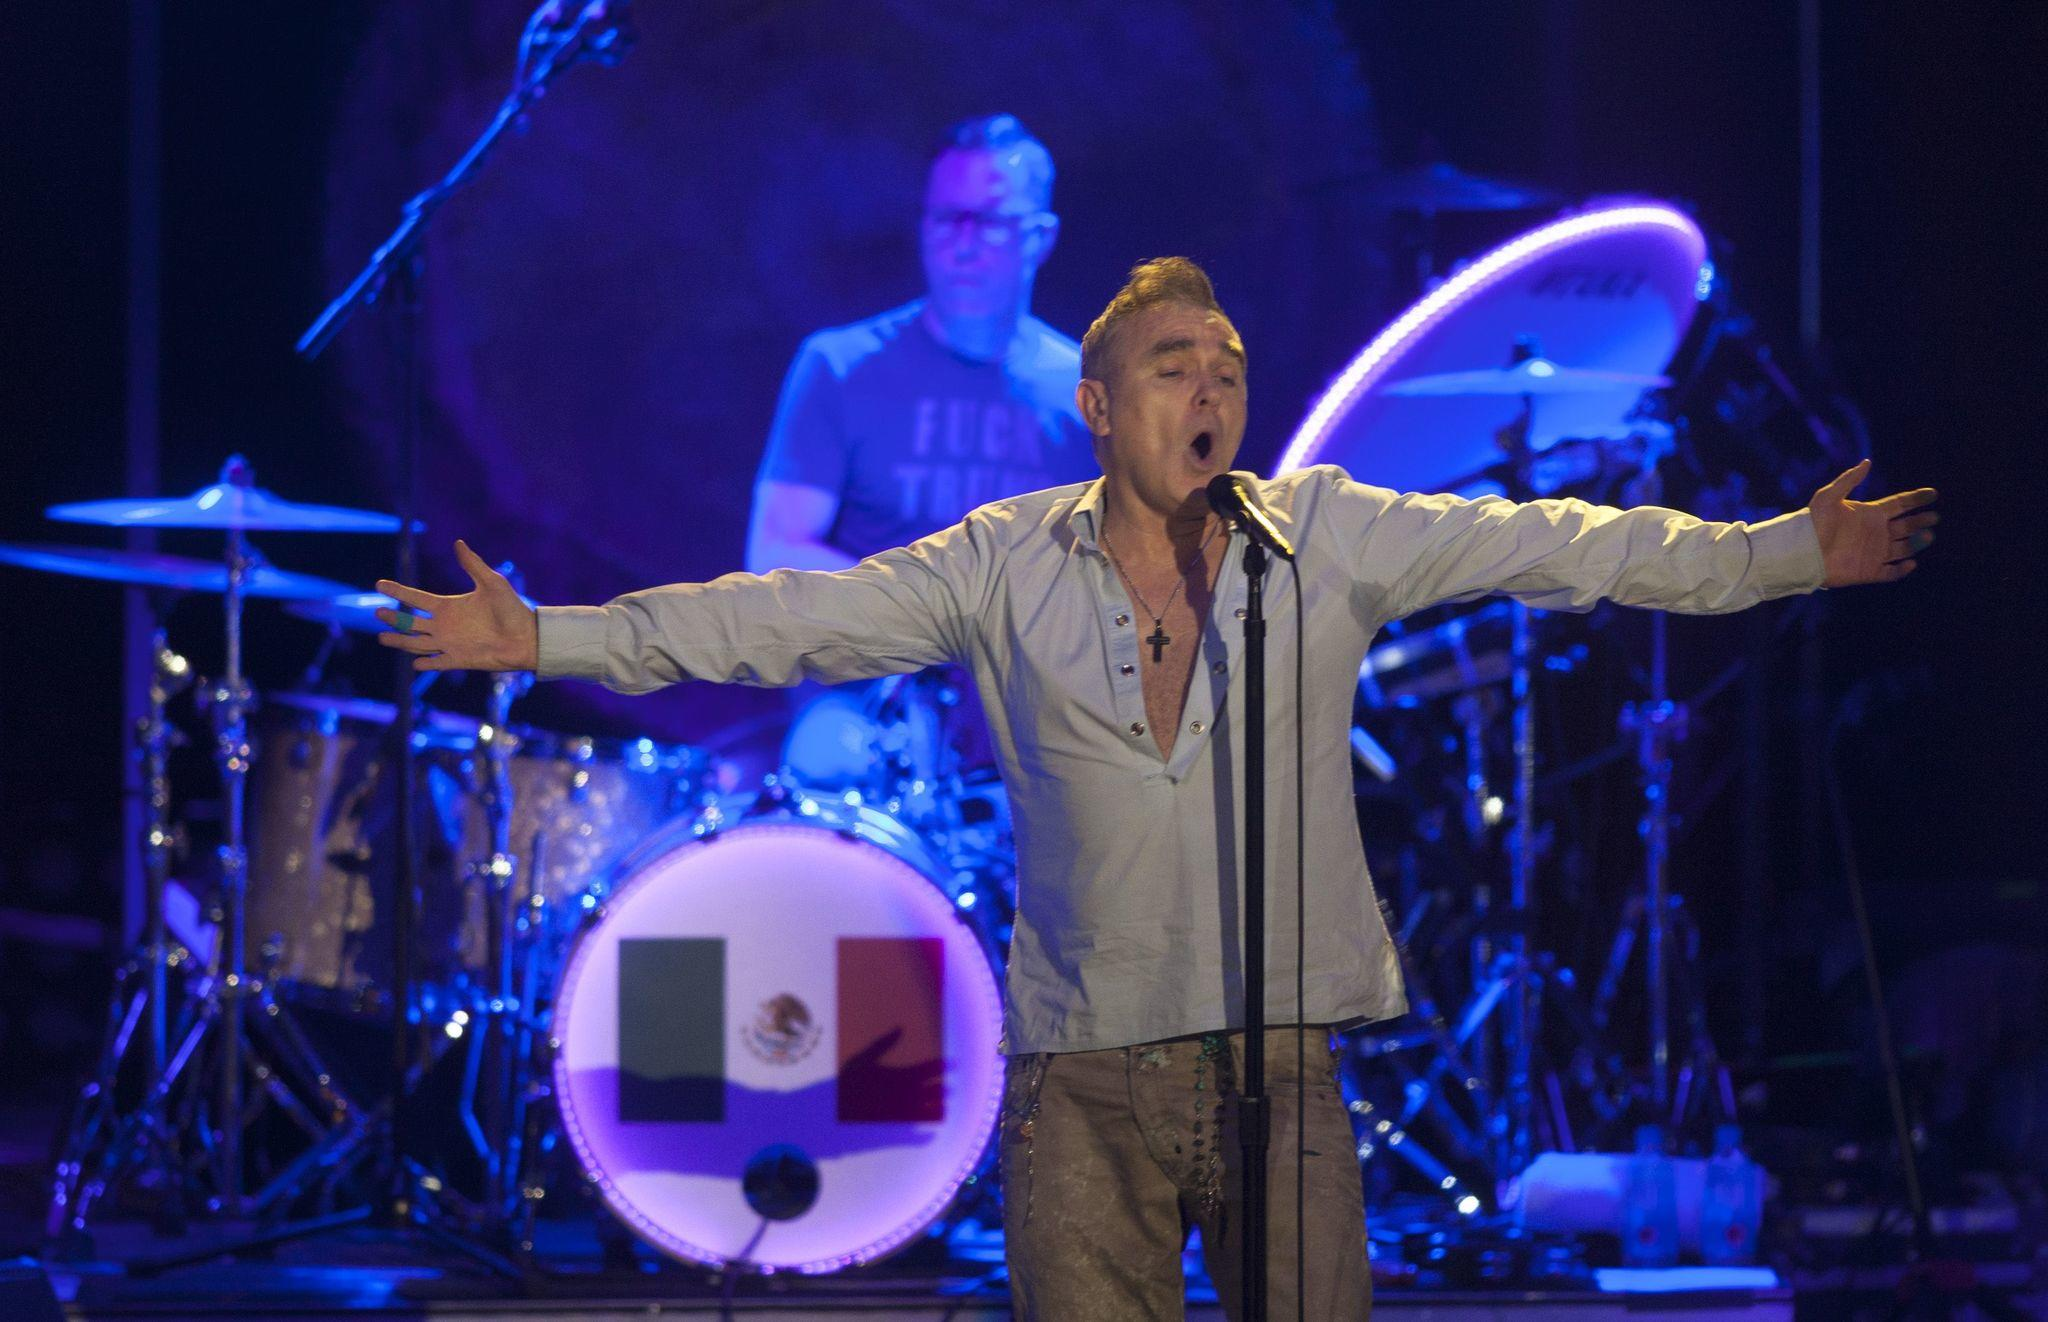 """Coinciding with his Hollywood Bowl shows this weekend, Morrissey will be celebrated on Friday with """"Morrissey Day"""" in Los Angeles. (Julio Cesar Aguilar / AFP/Getty Images)"""